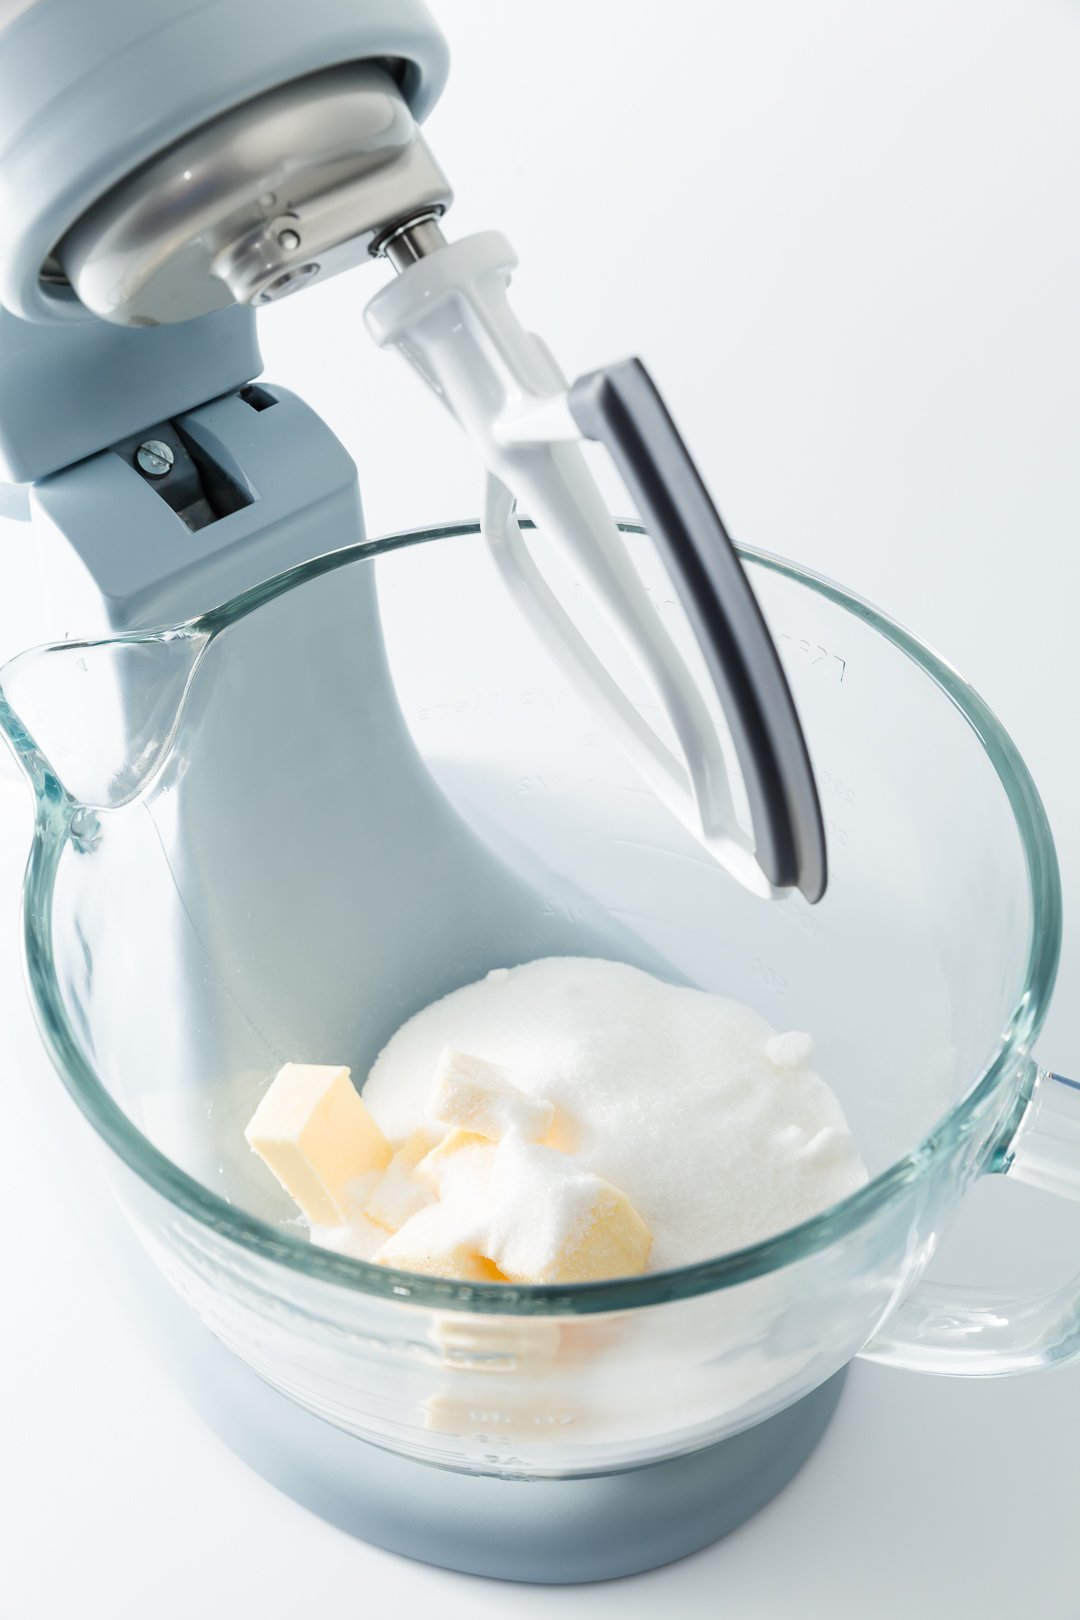 Butter and sugar in a KitchenAid mixer